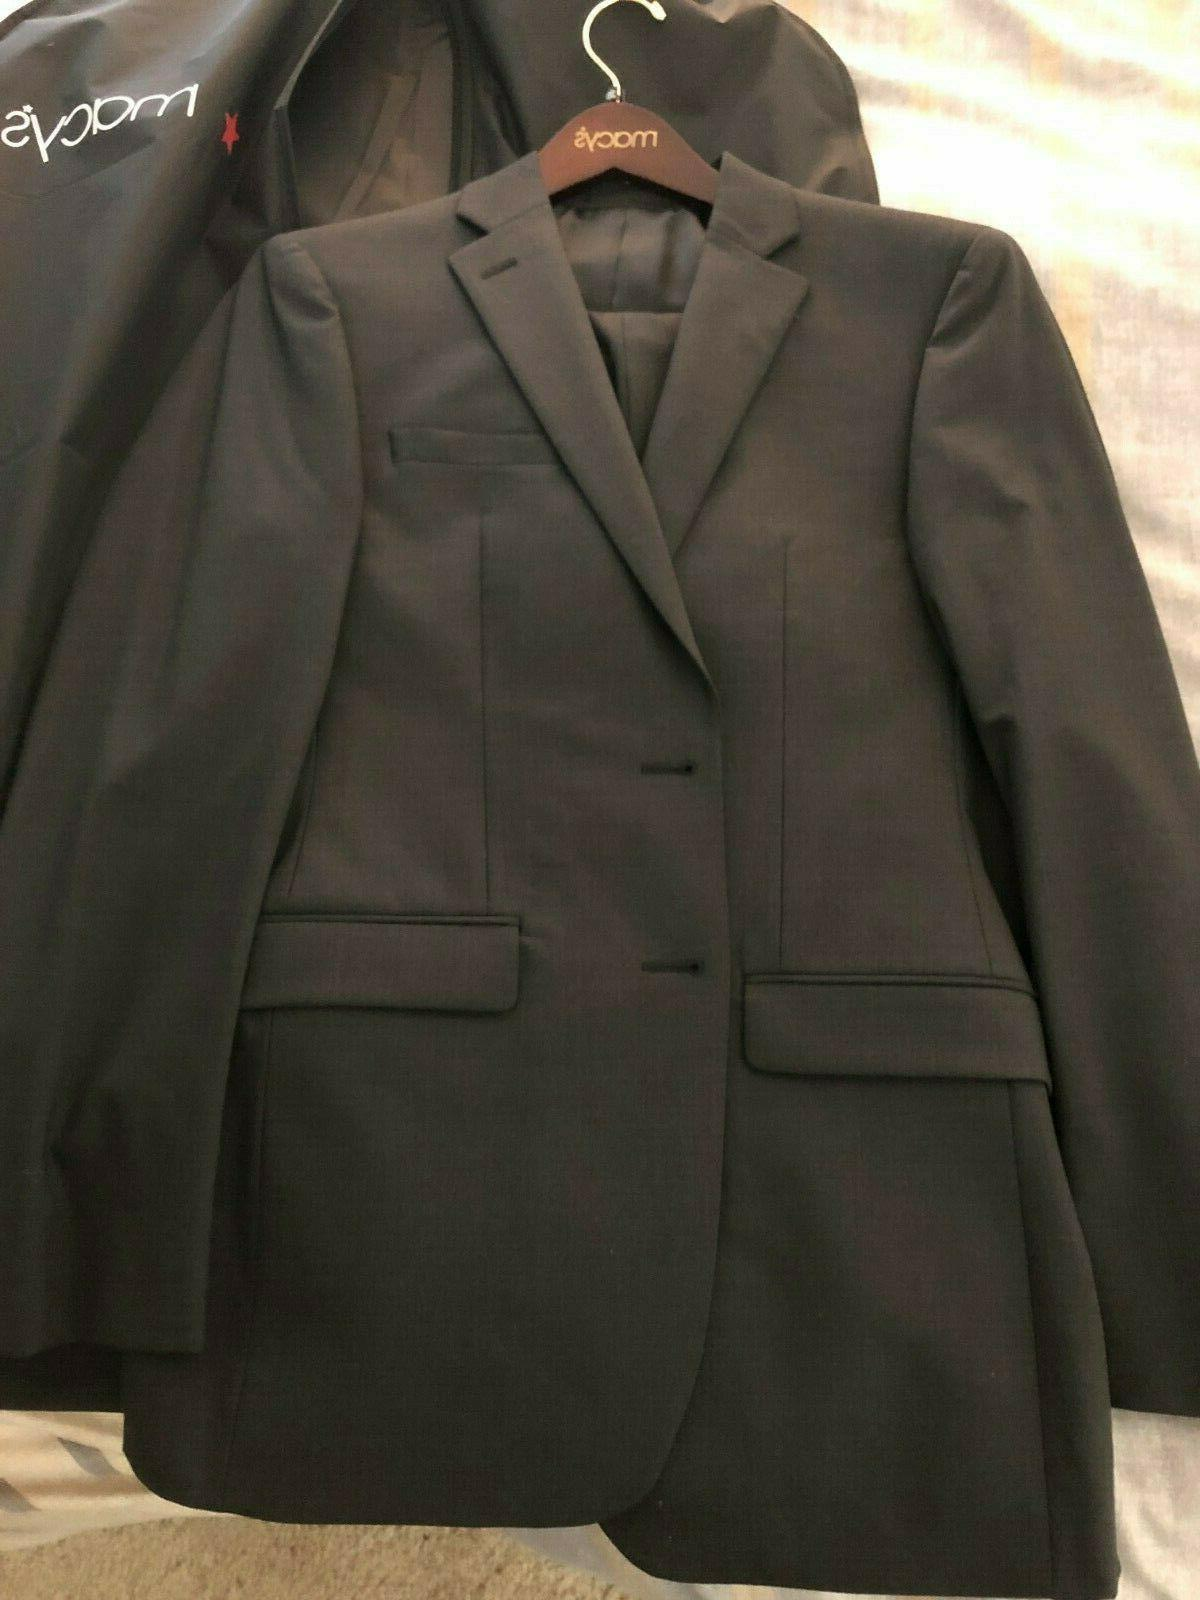 macys mens dark gray grey suit separates